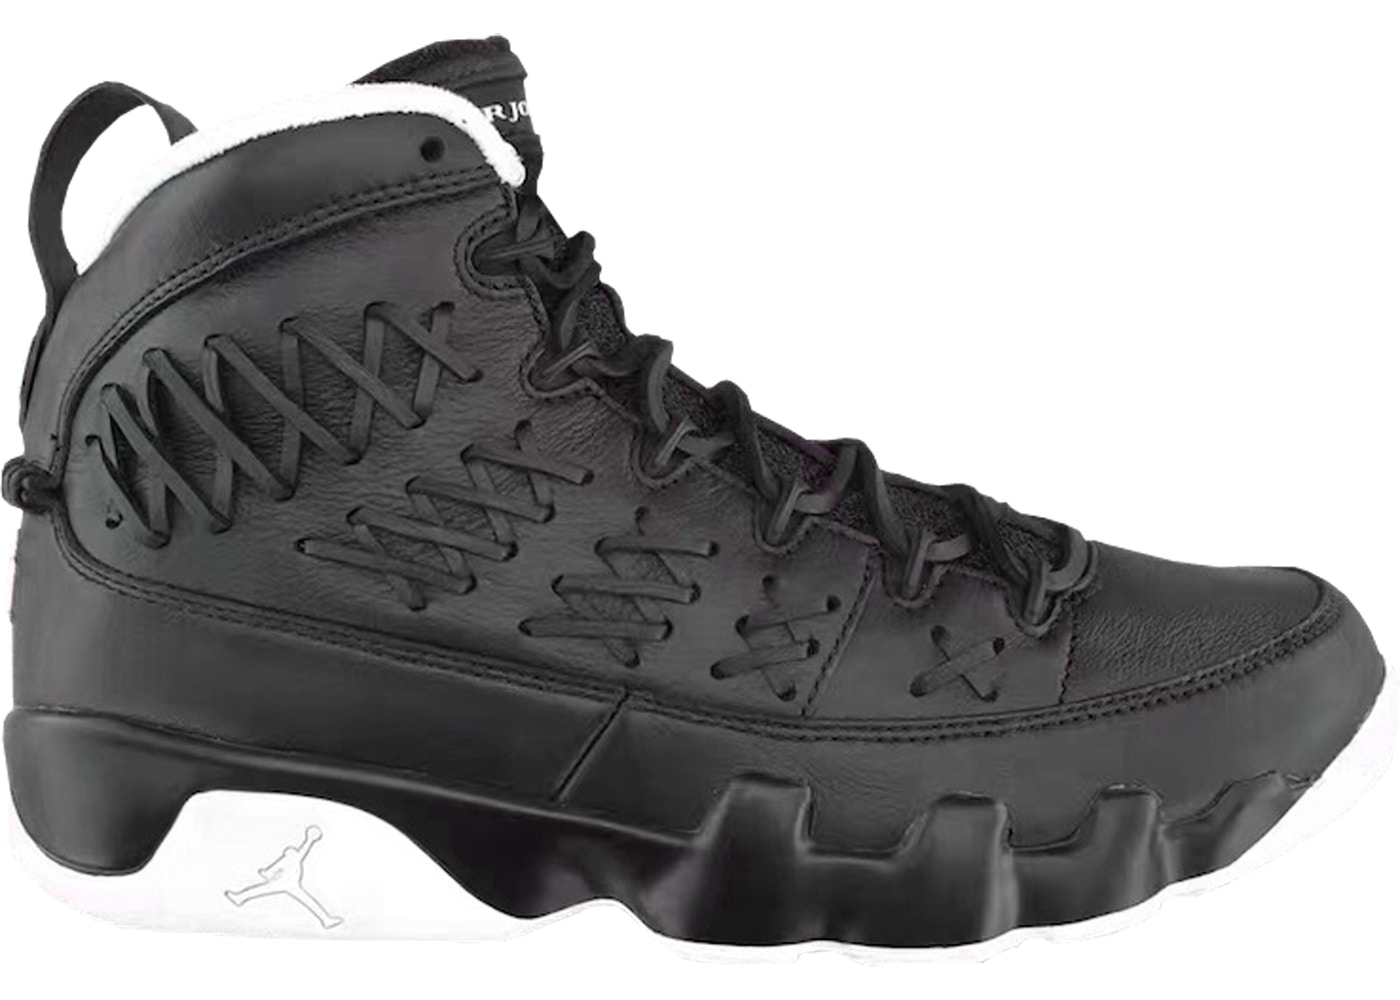 Pinnacle Auto Sales >> Jordan 9 Retro Pinnacle Baseball Black - 897560-003/AH6233-903